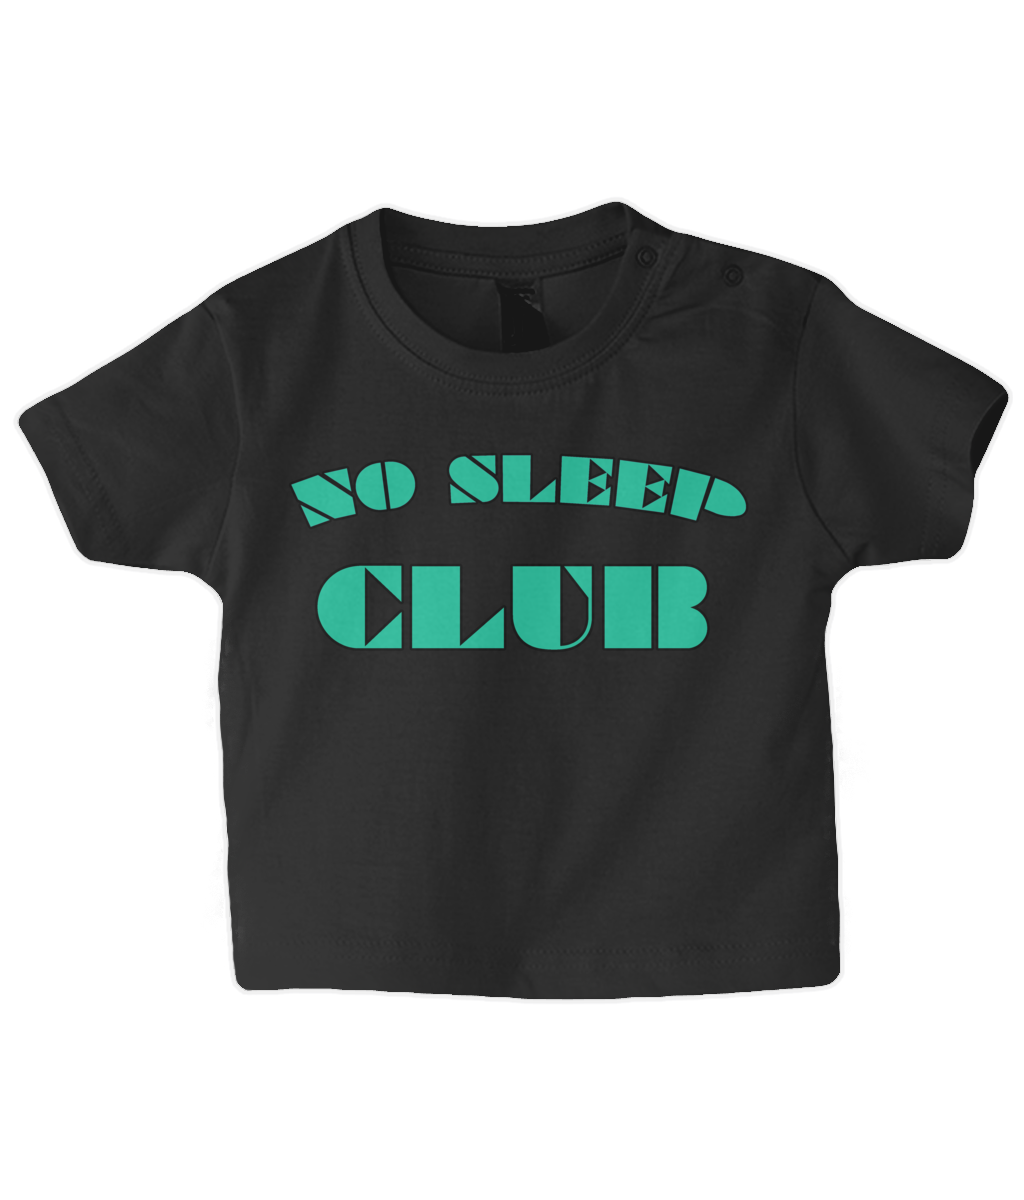 No Sleep Club Baby T Shirt